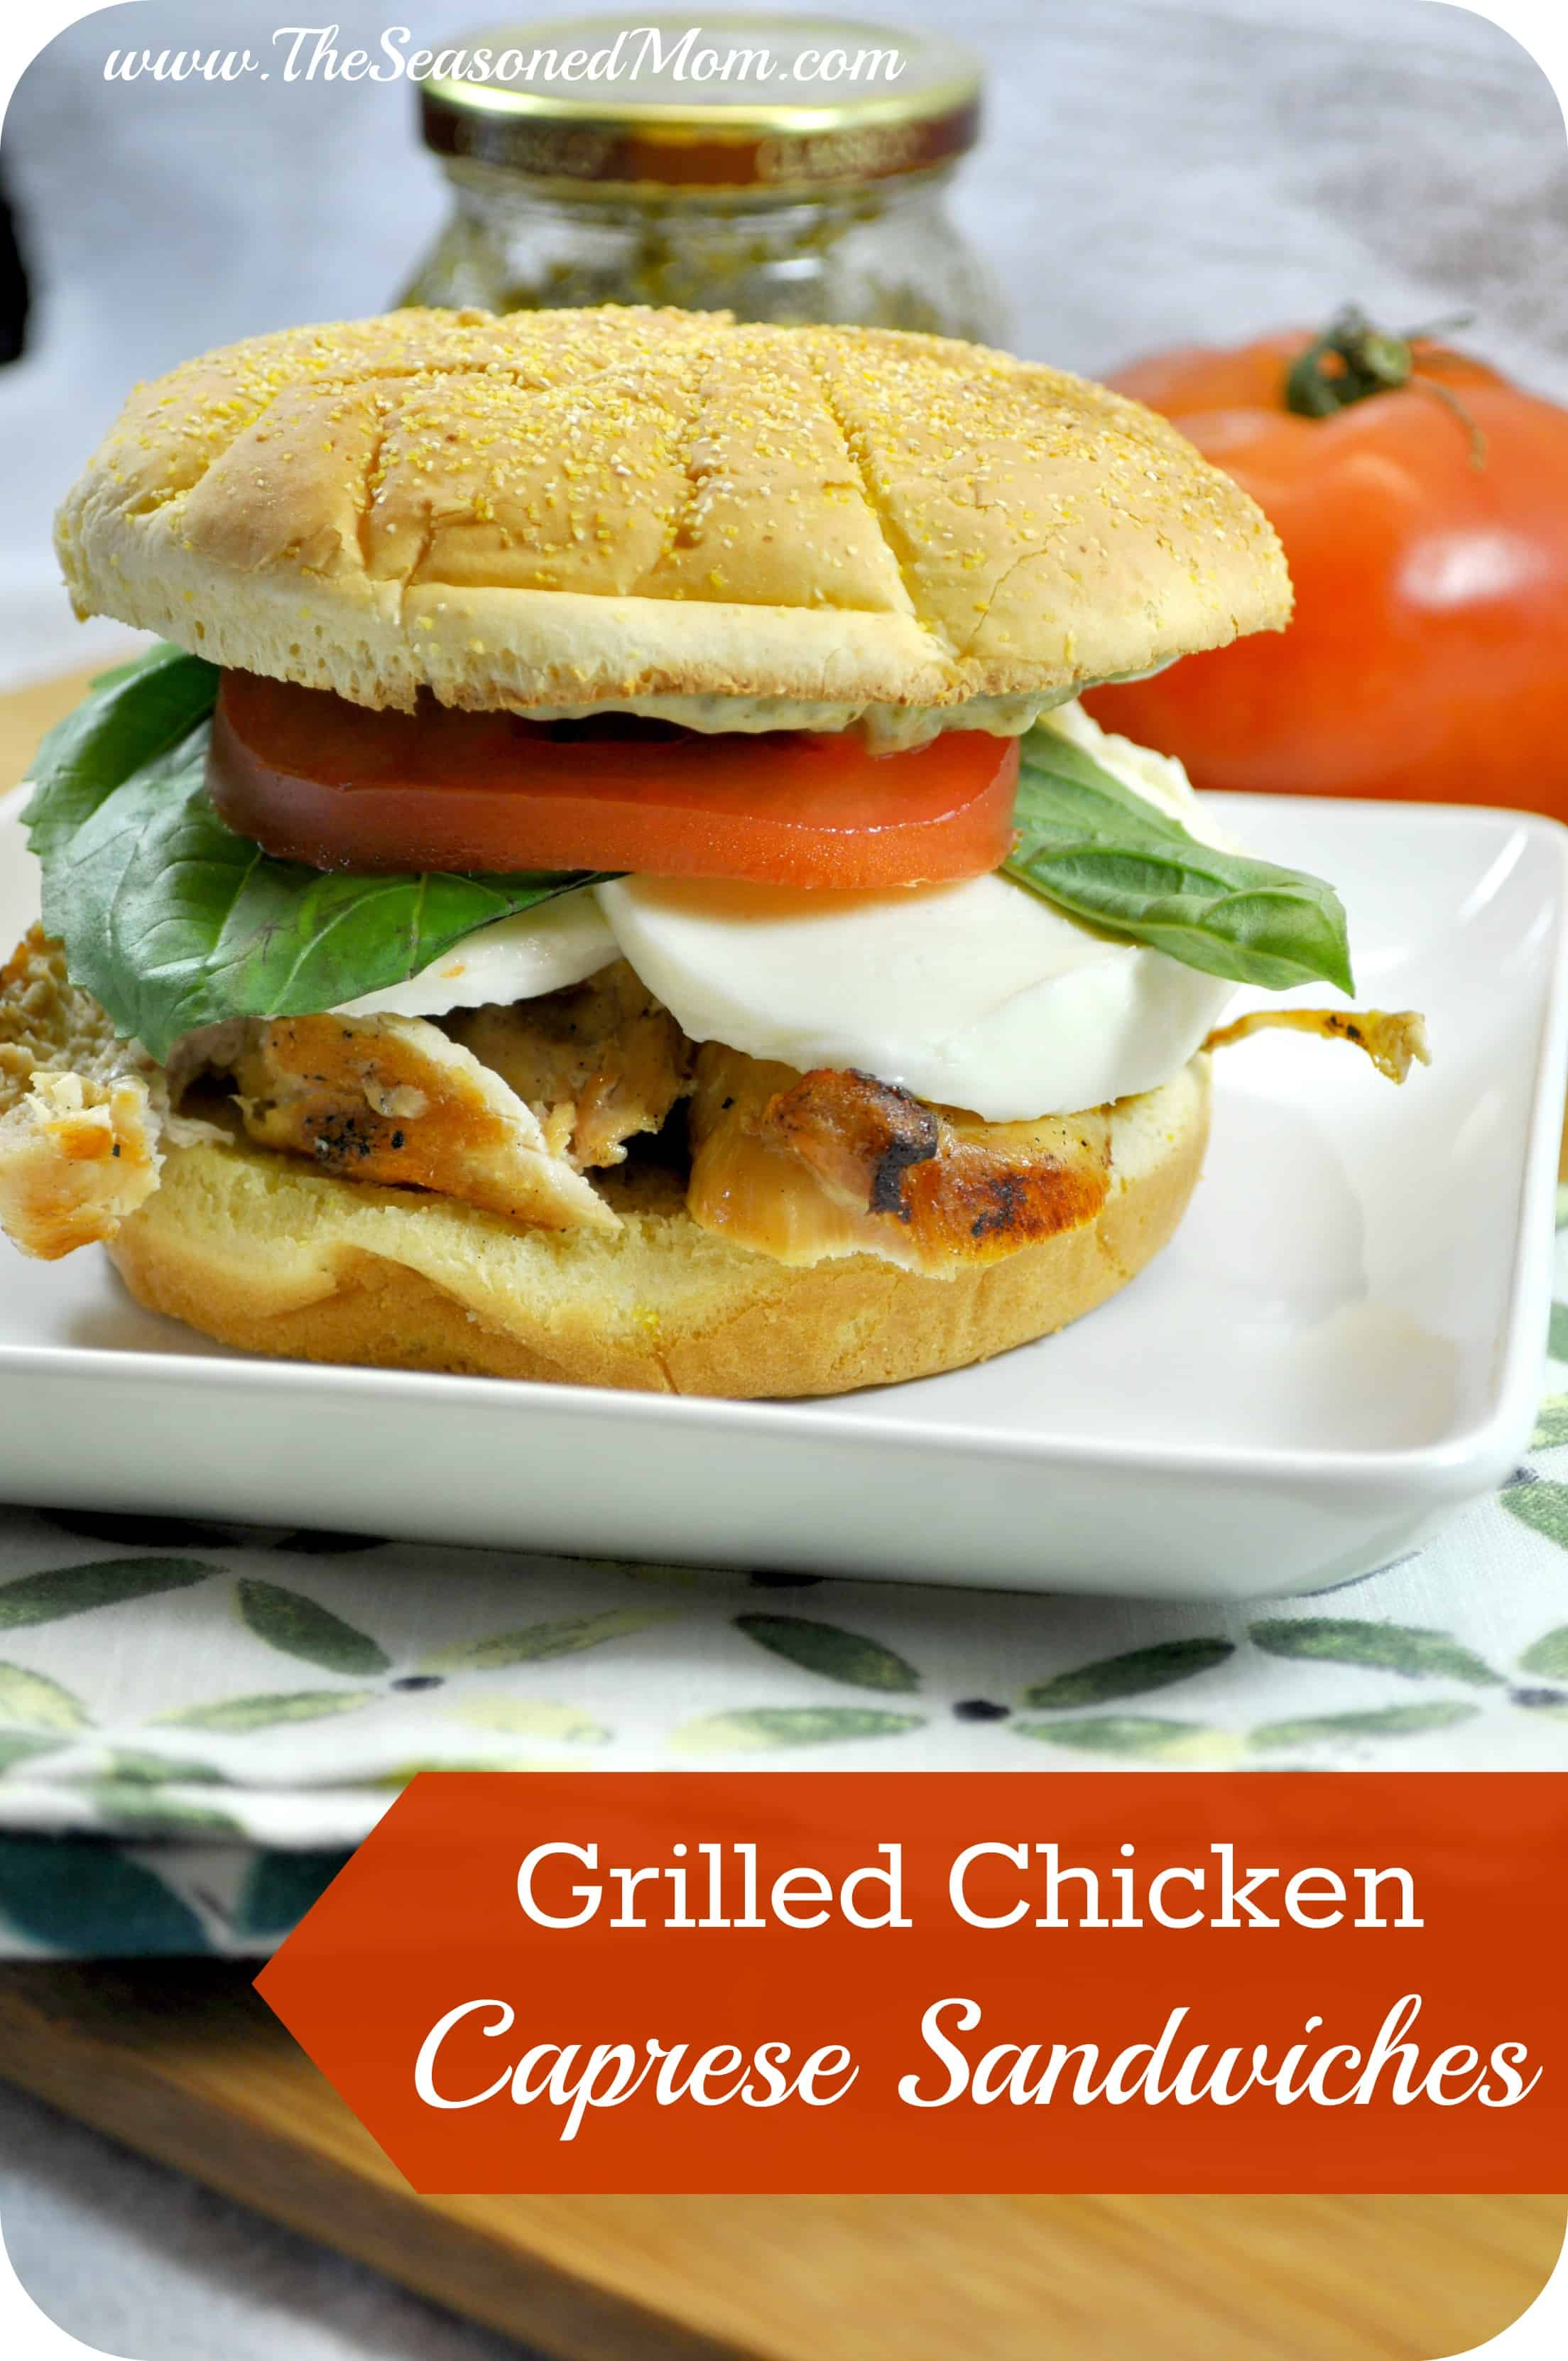 Grilled Chicken Caprese Sandwiches The Seasoned Mom